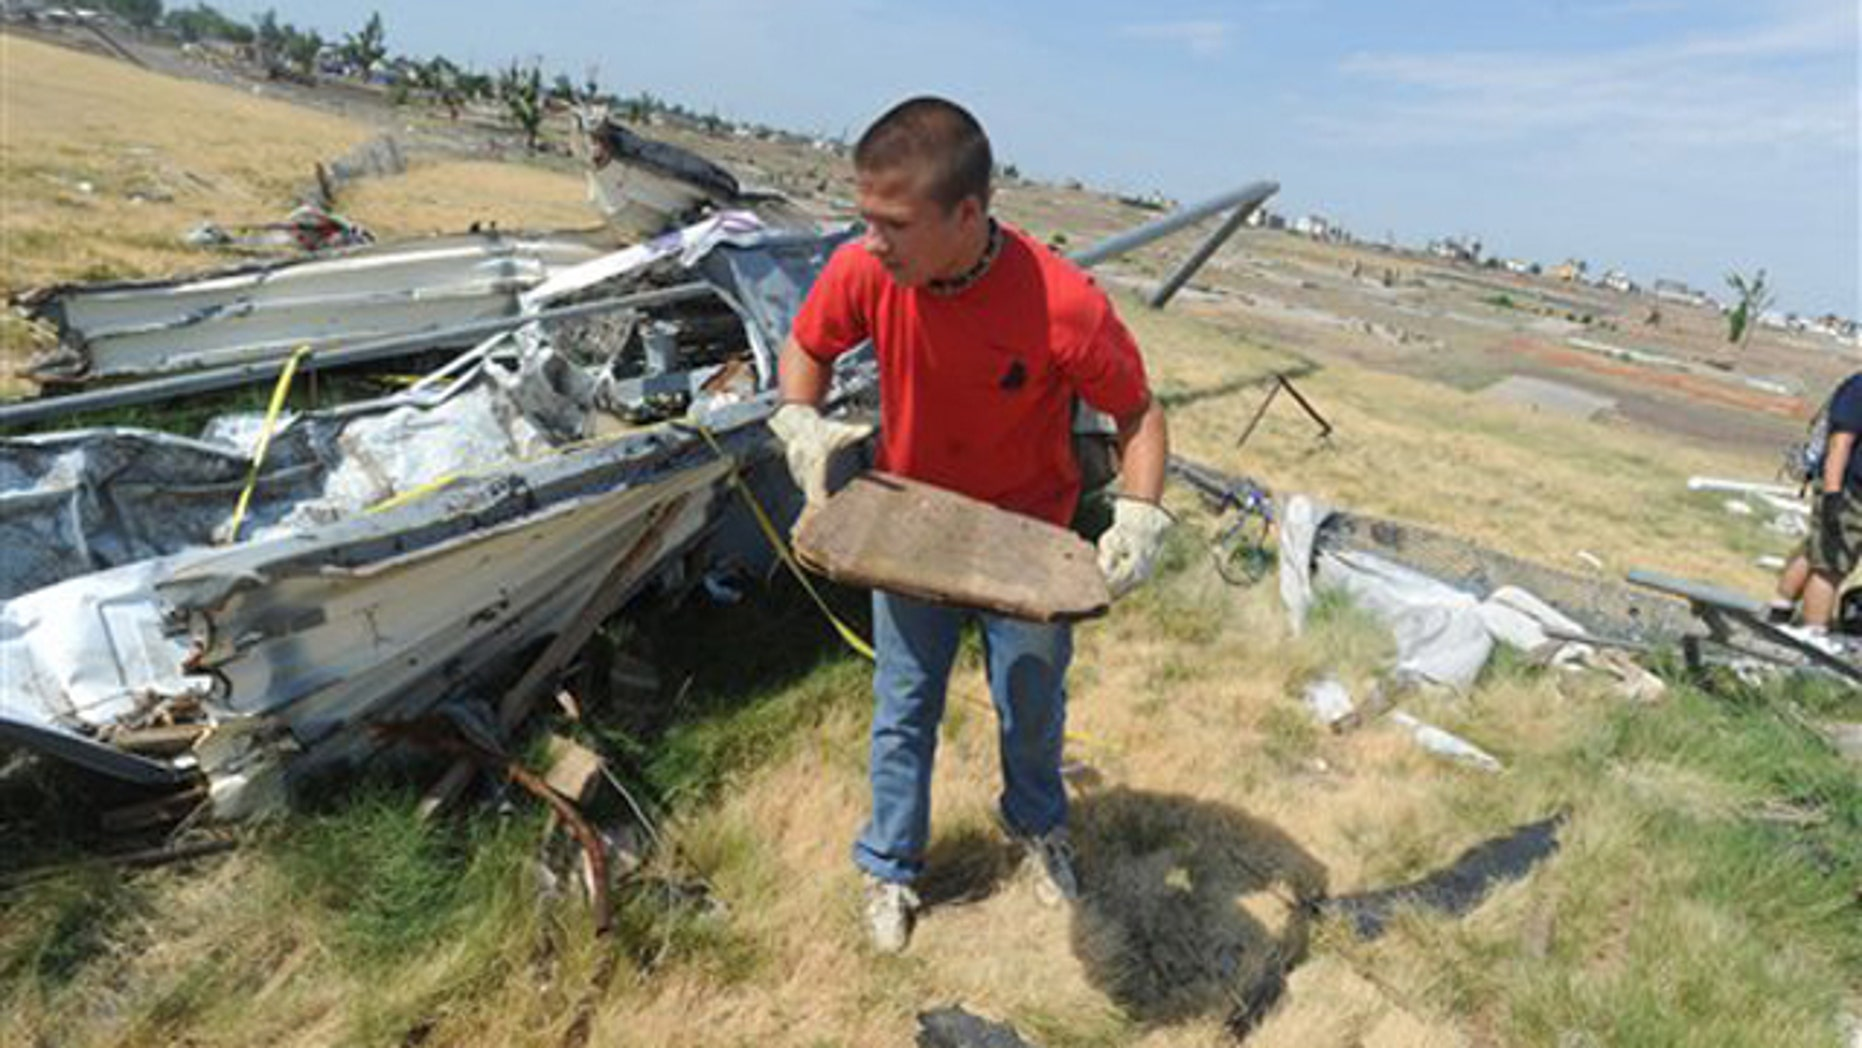 A boyscout volunteers to clean up debris from the tornado on a high school sports field.